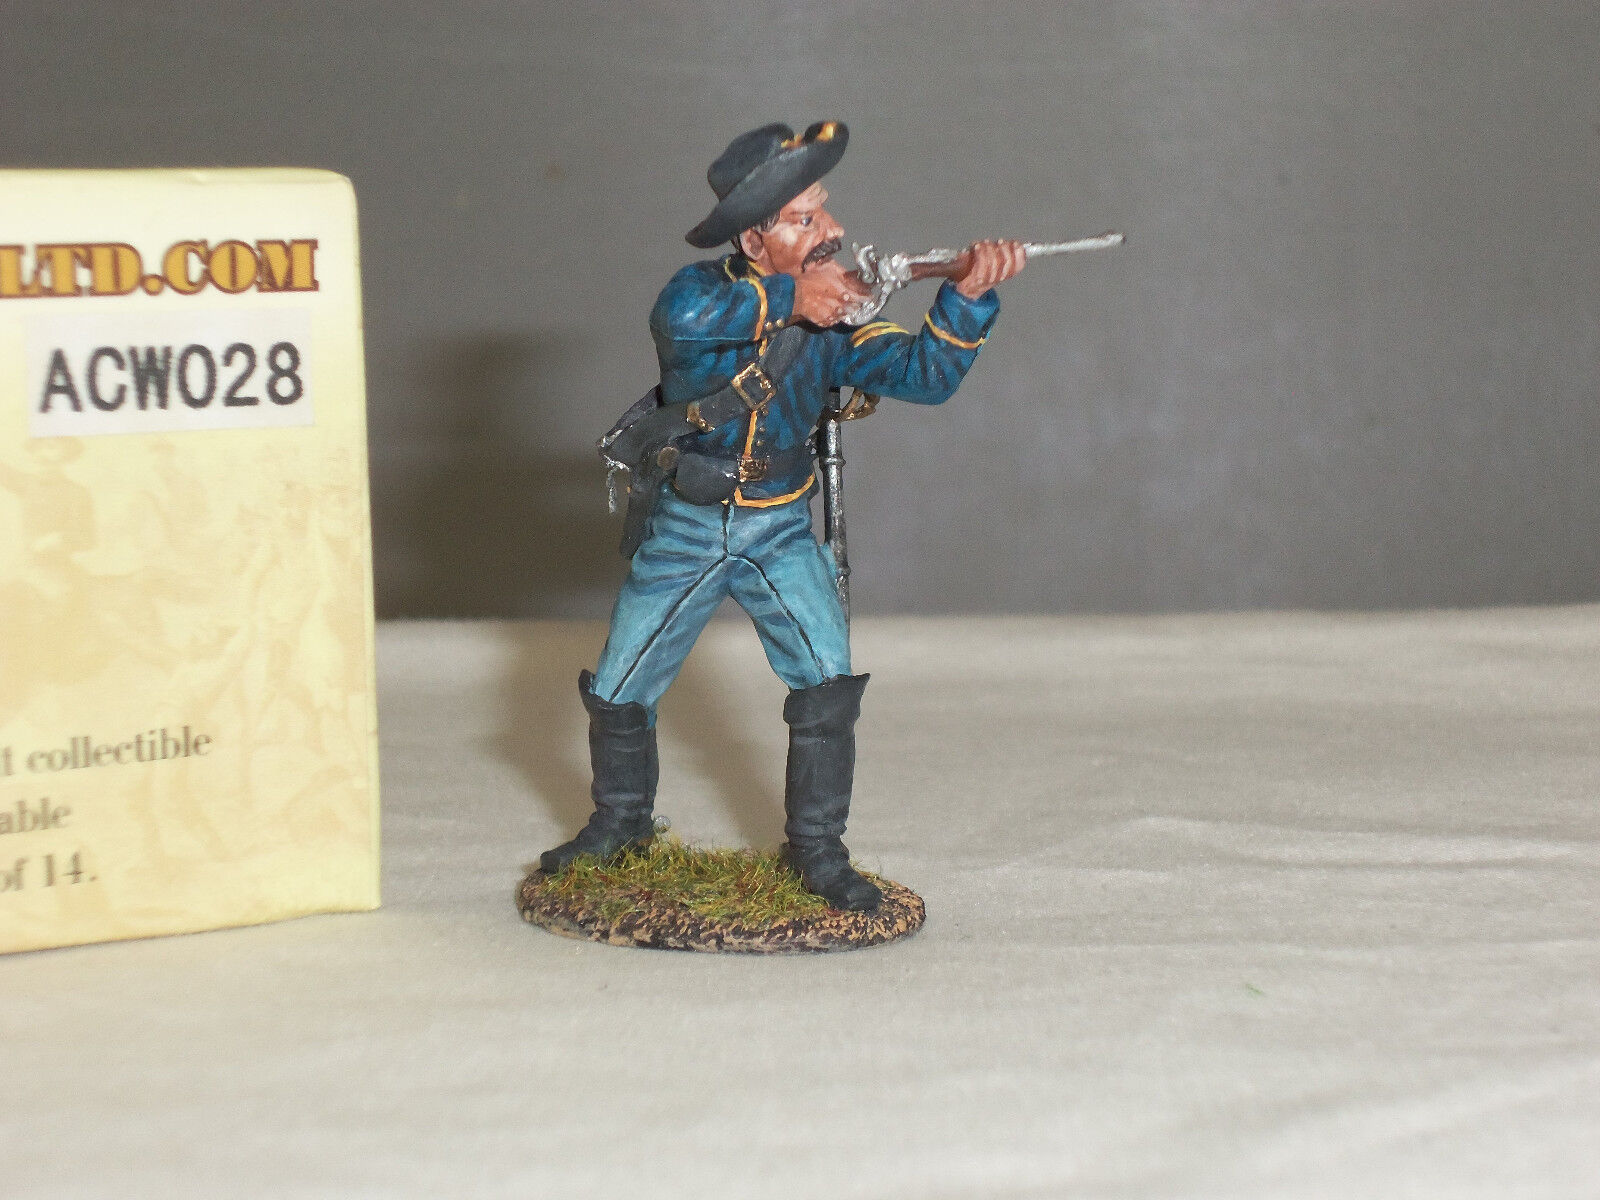 FIRST LEGION ACW028 UNION DISMOUNTED CAVALRY TROOPER FIRING METAL TOY SOLDIER